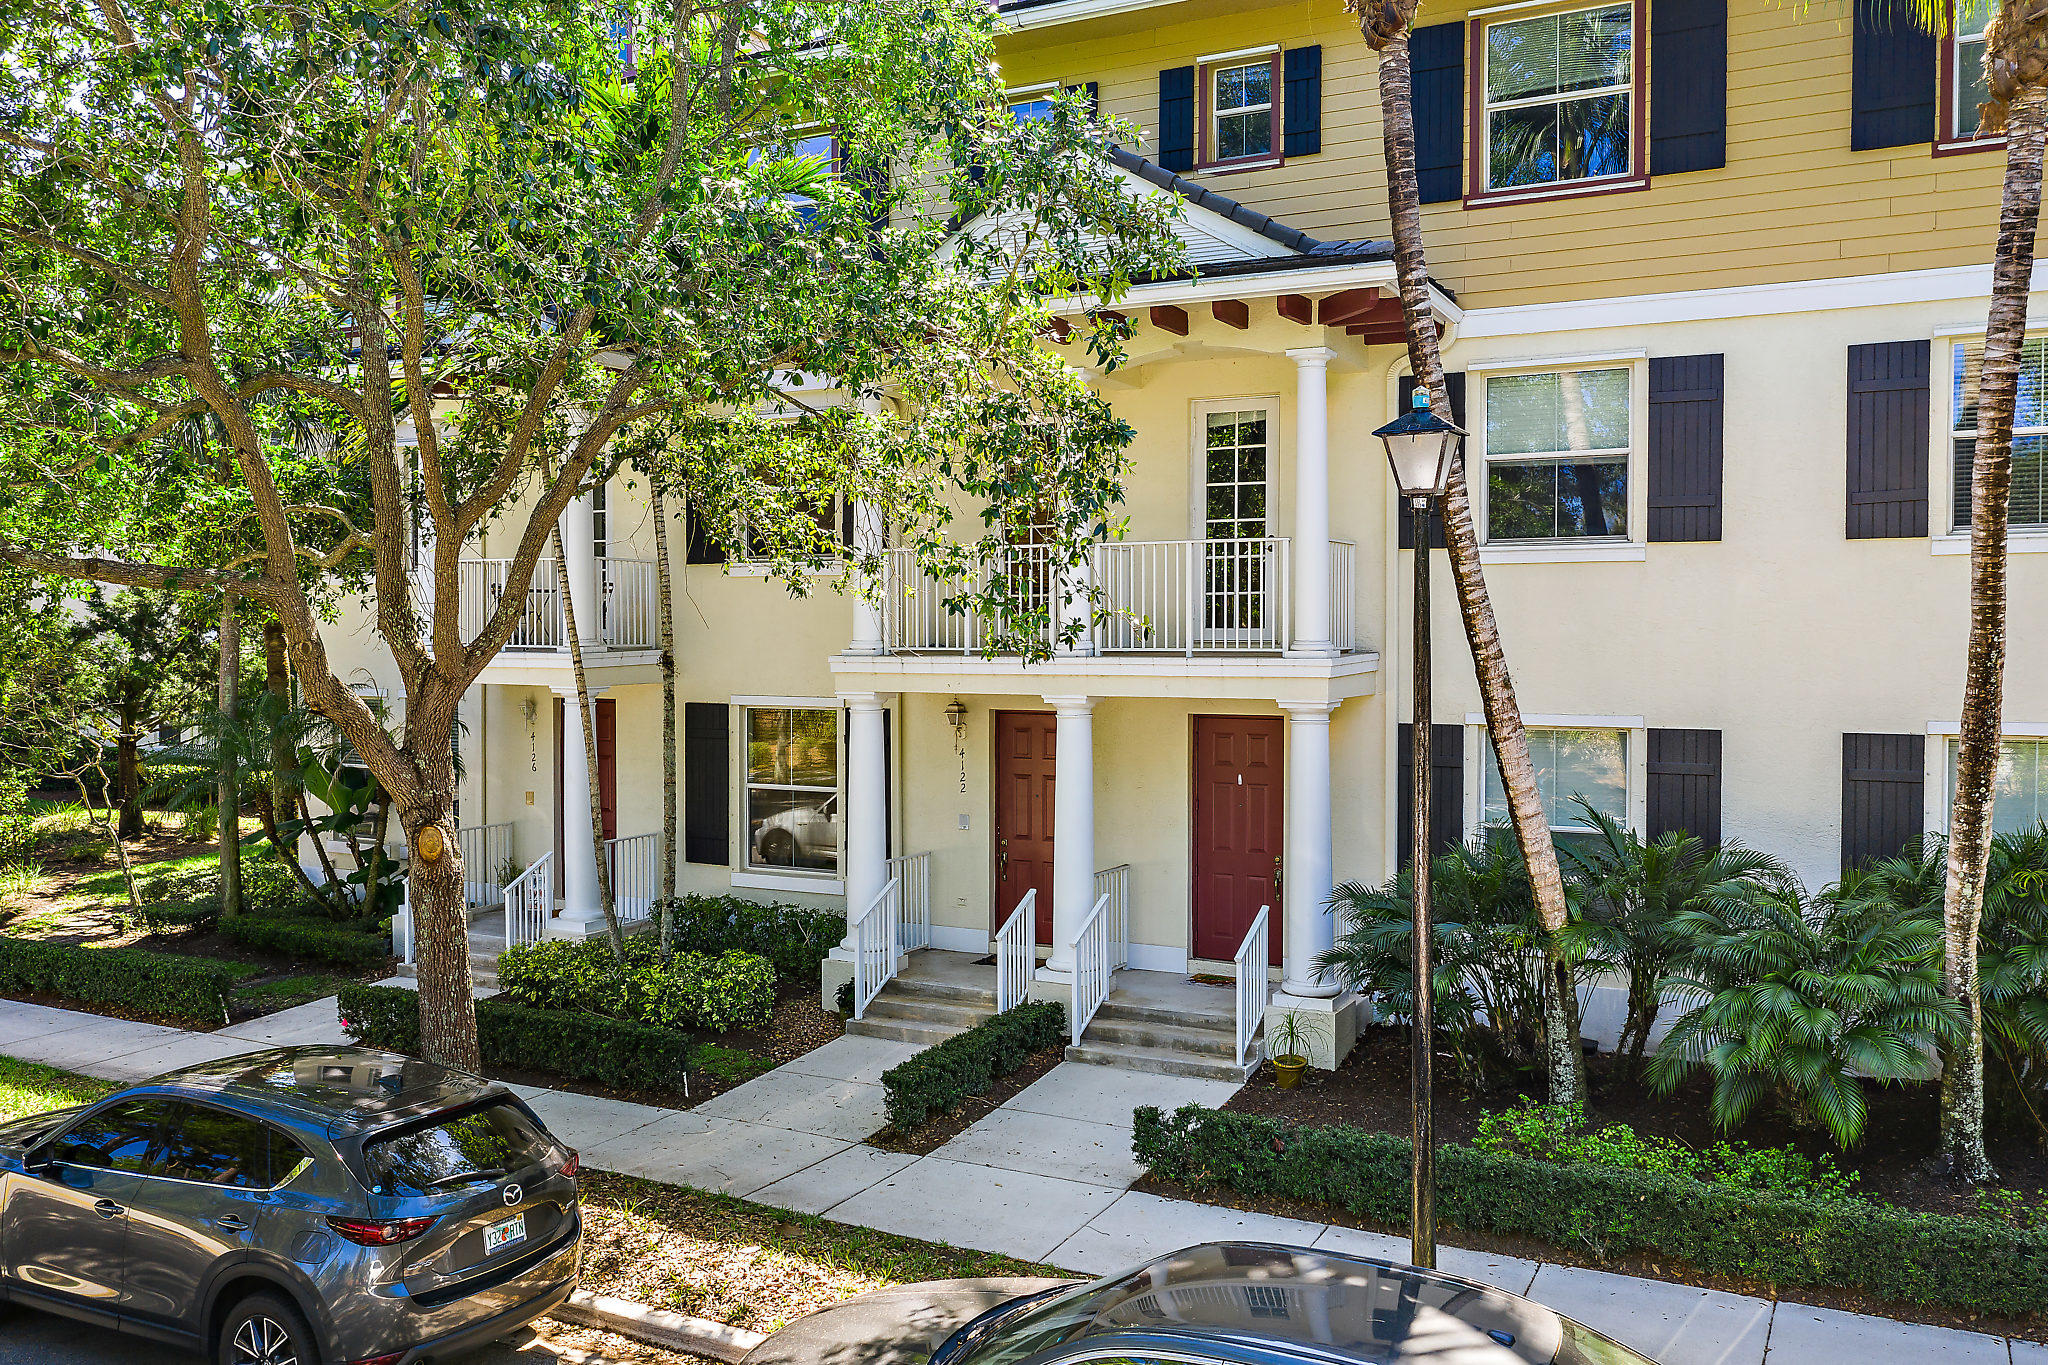 4122 Greenway Drive, Jupiter, Florida 33458, 3 Bedrooms Bedrooms, ,3.1 BathroomsBathrooms,A,Townhouse,Greenway,RX-10615582